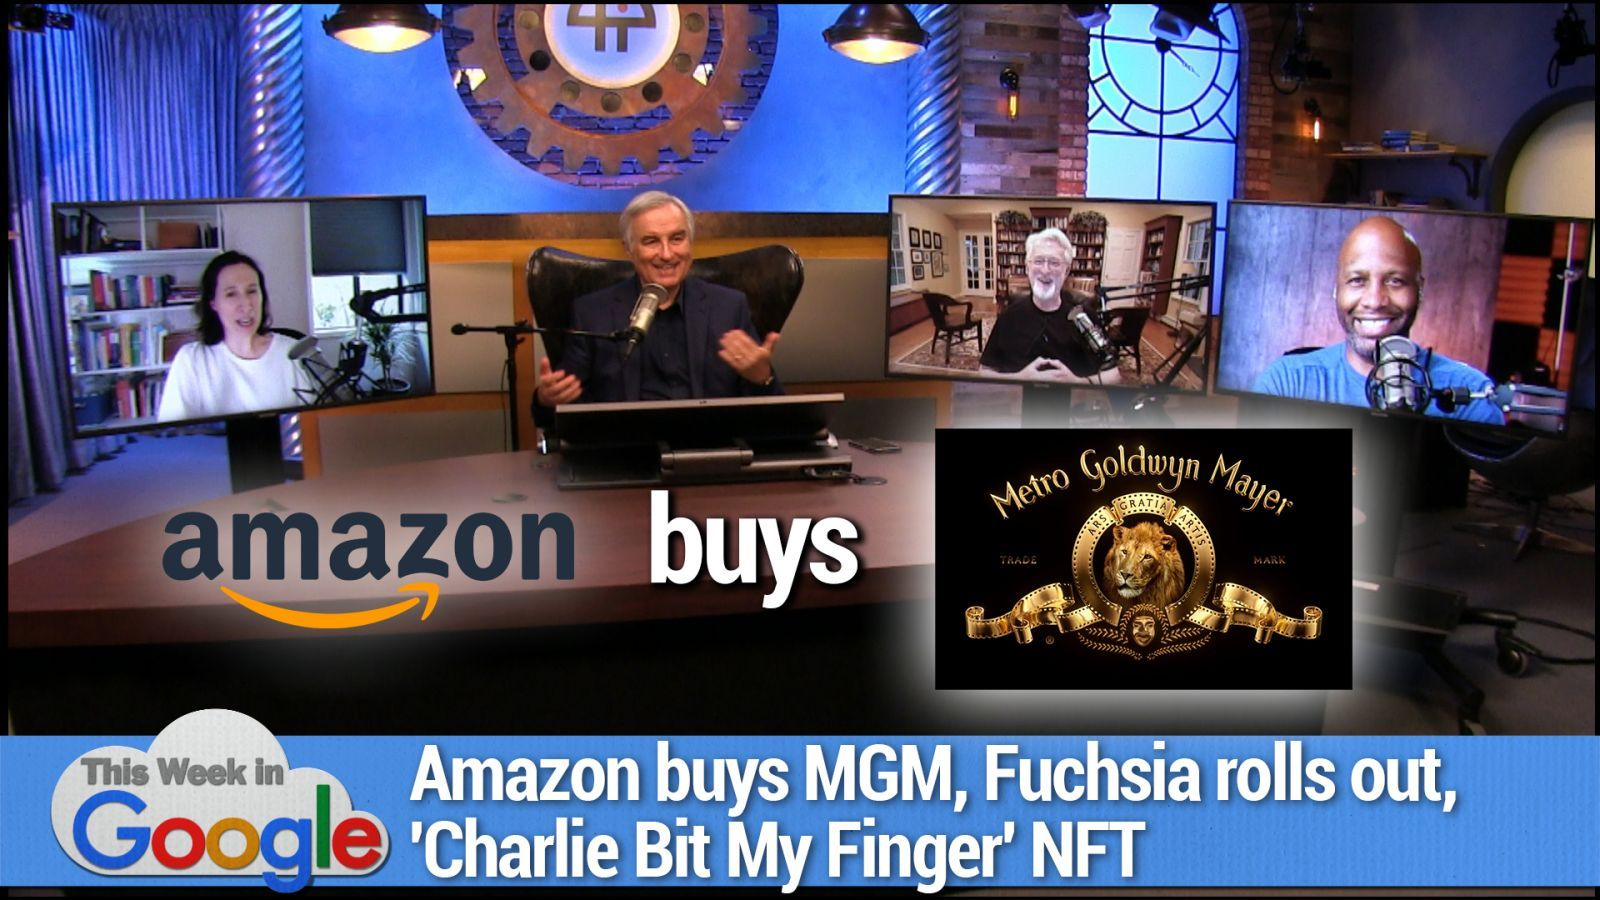 58% Normal - Amazon buying MGM catalogue, Fuchsia rolls out, 'Charlie Bit My Finger' NFT